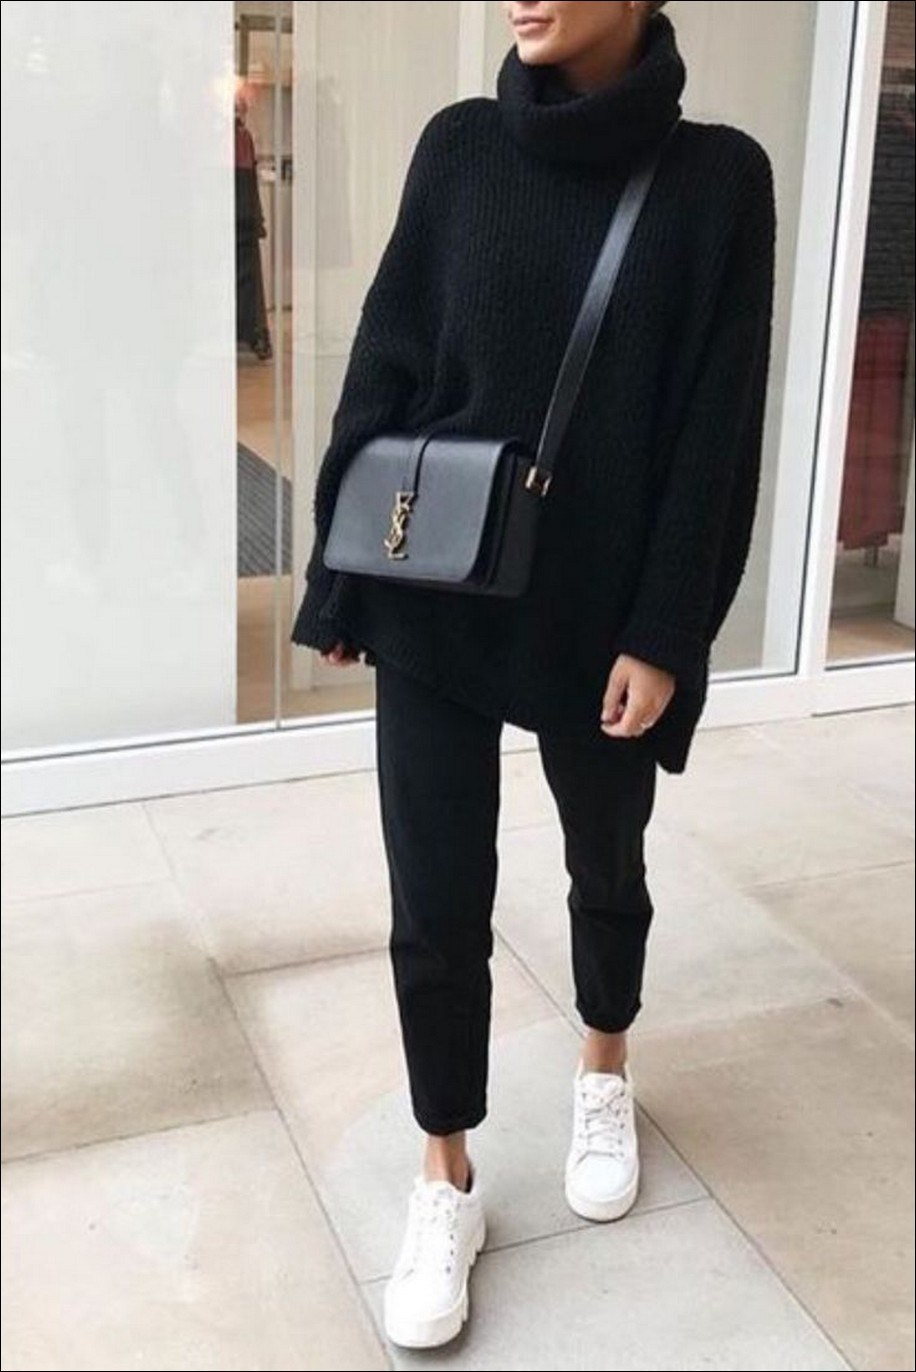 55+ magnificient winter outfits ideas to wear right now 10